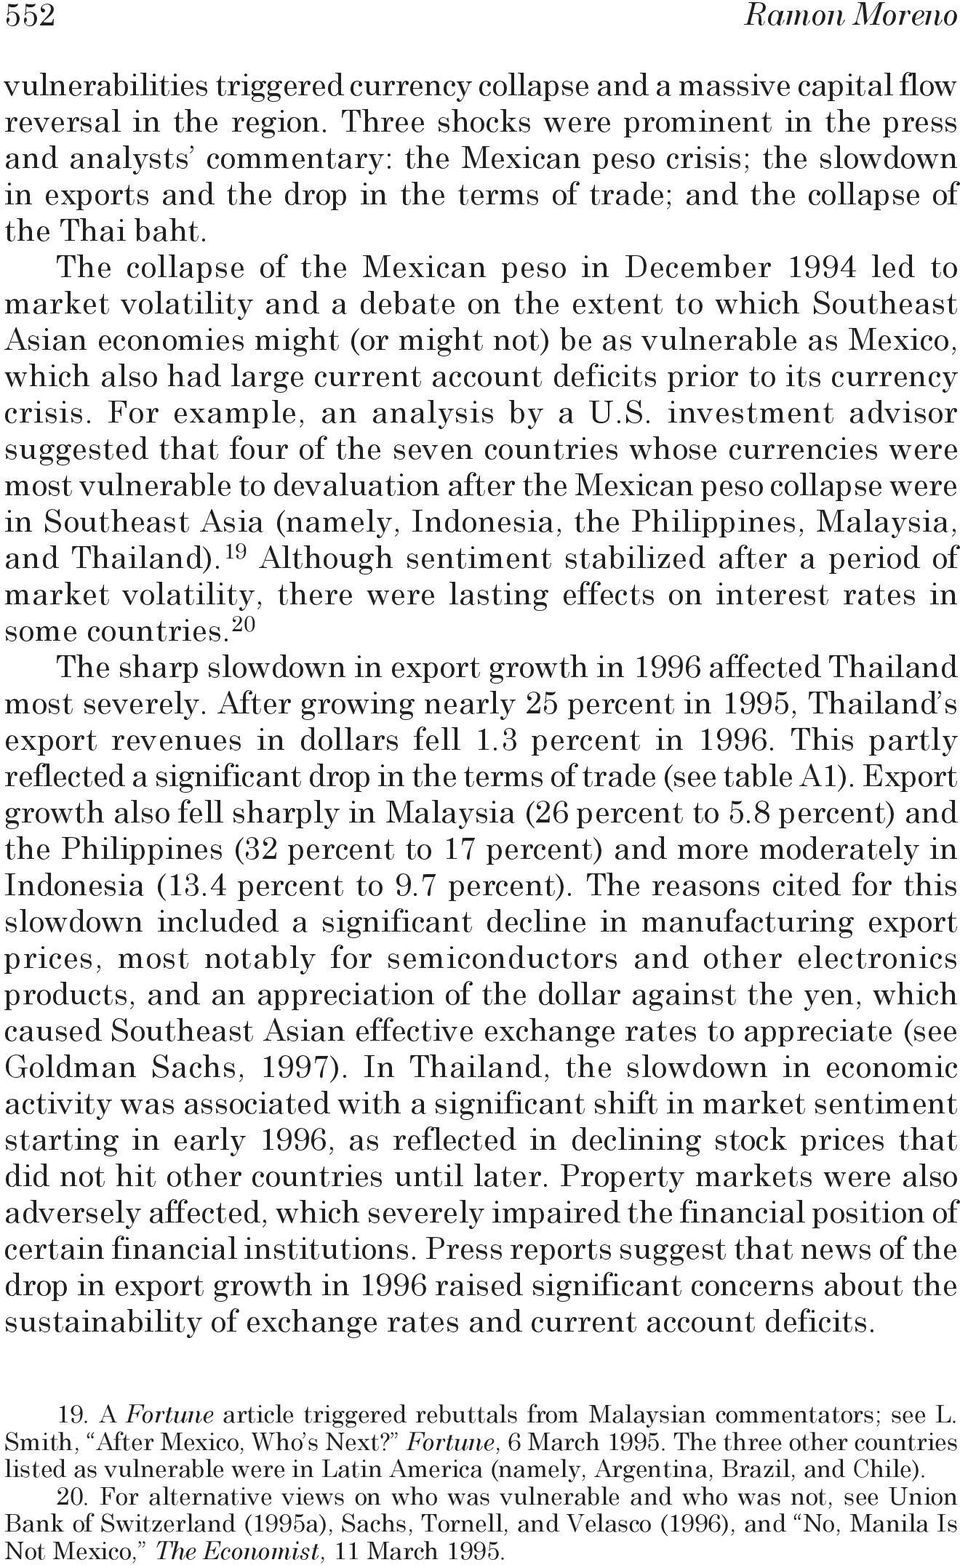 The collapse of the Mexican peso in December 1994 led to market volatility and a debate on the extent to which Southeast Asian economies might (or might not) be as vulnerable as Mexico, which also